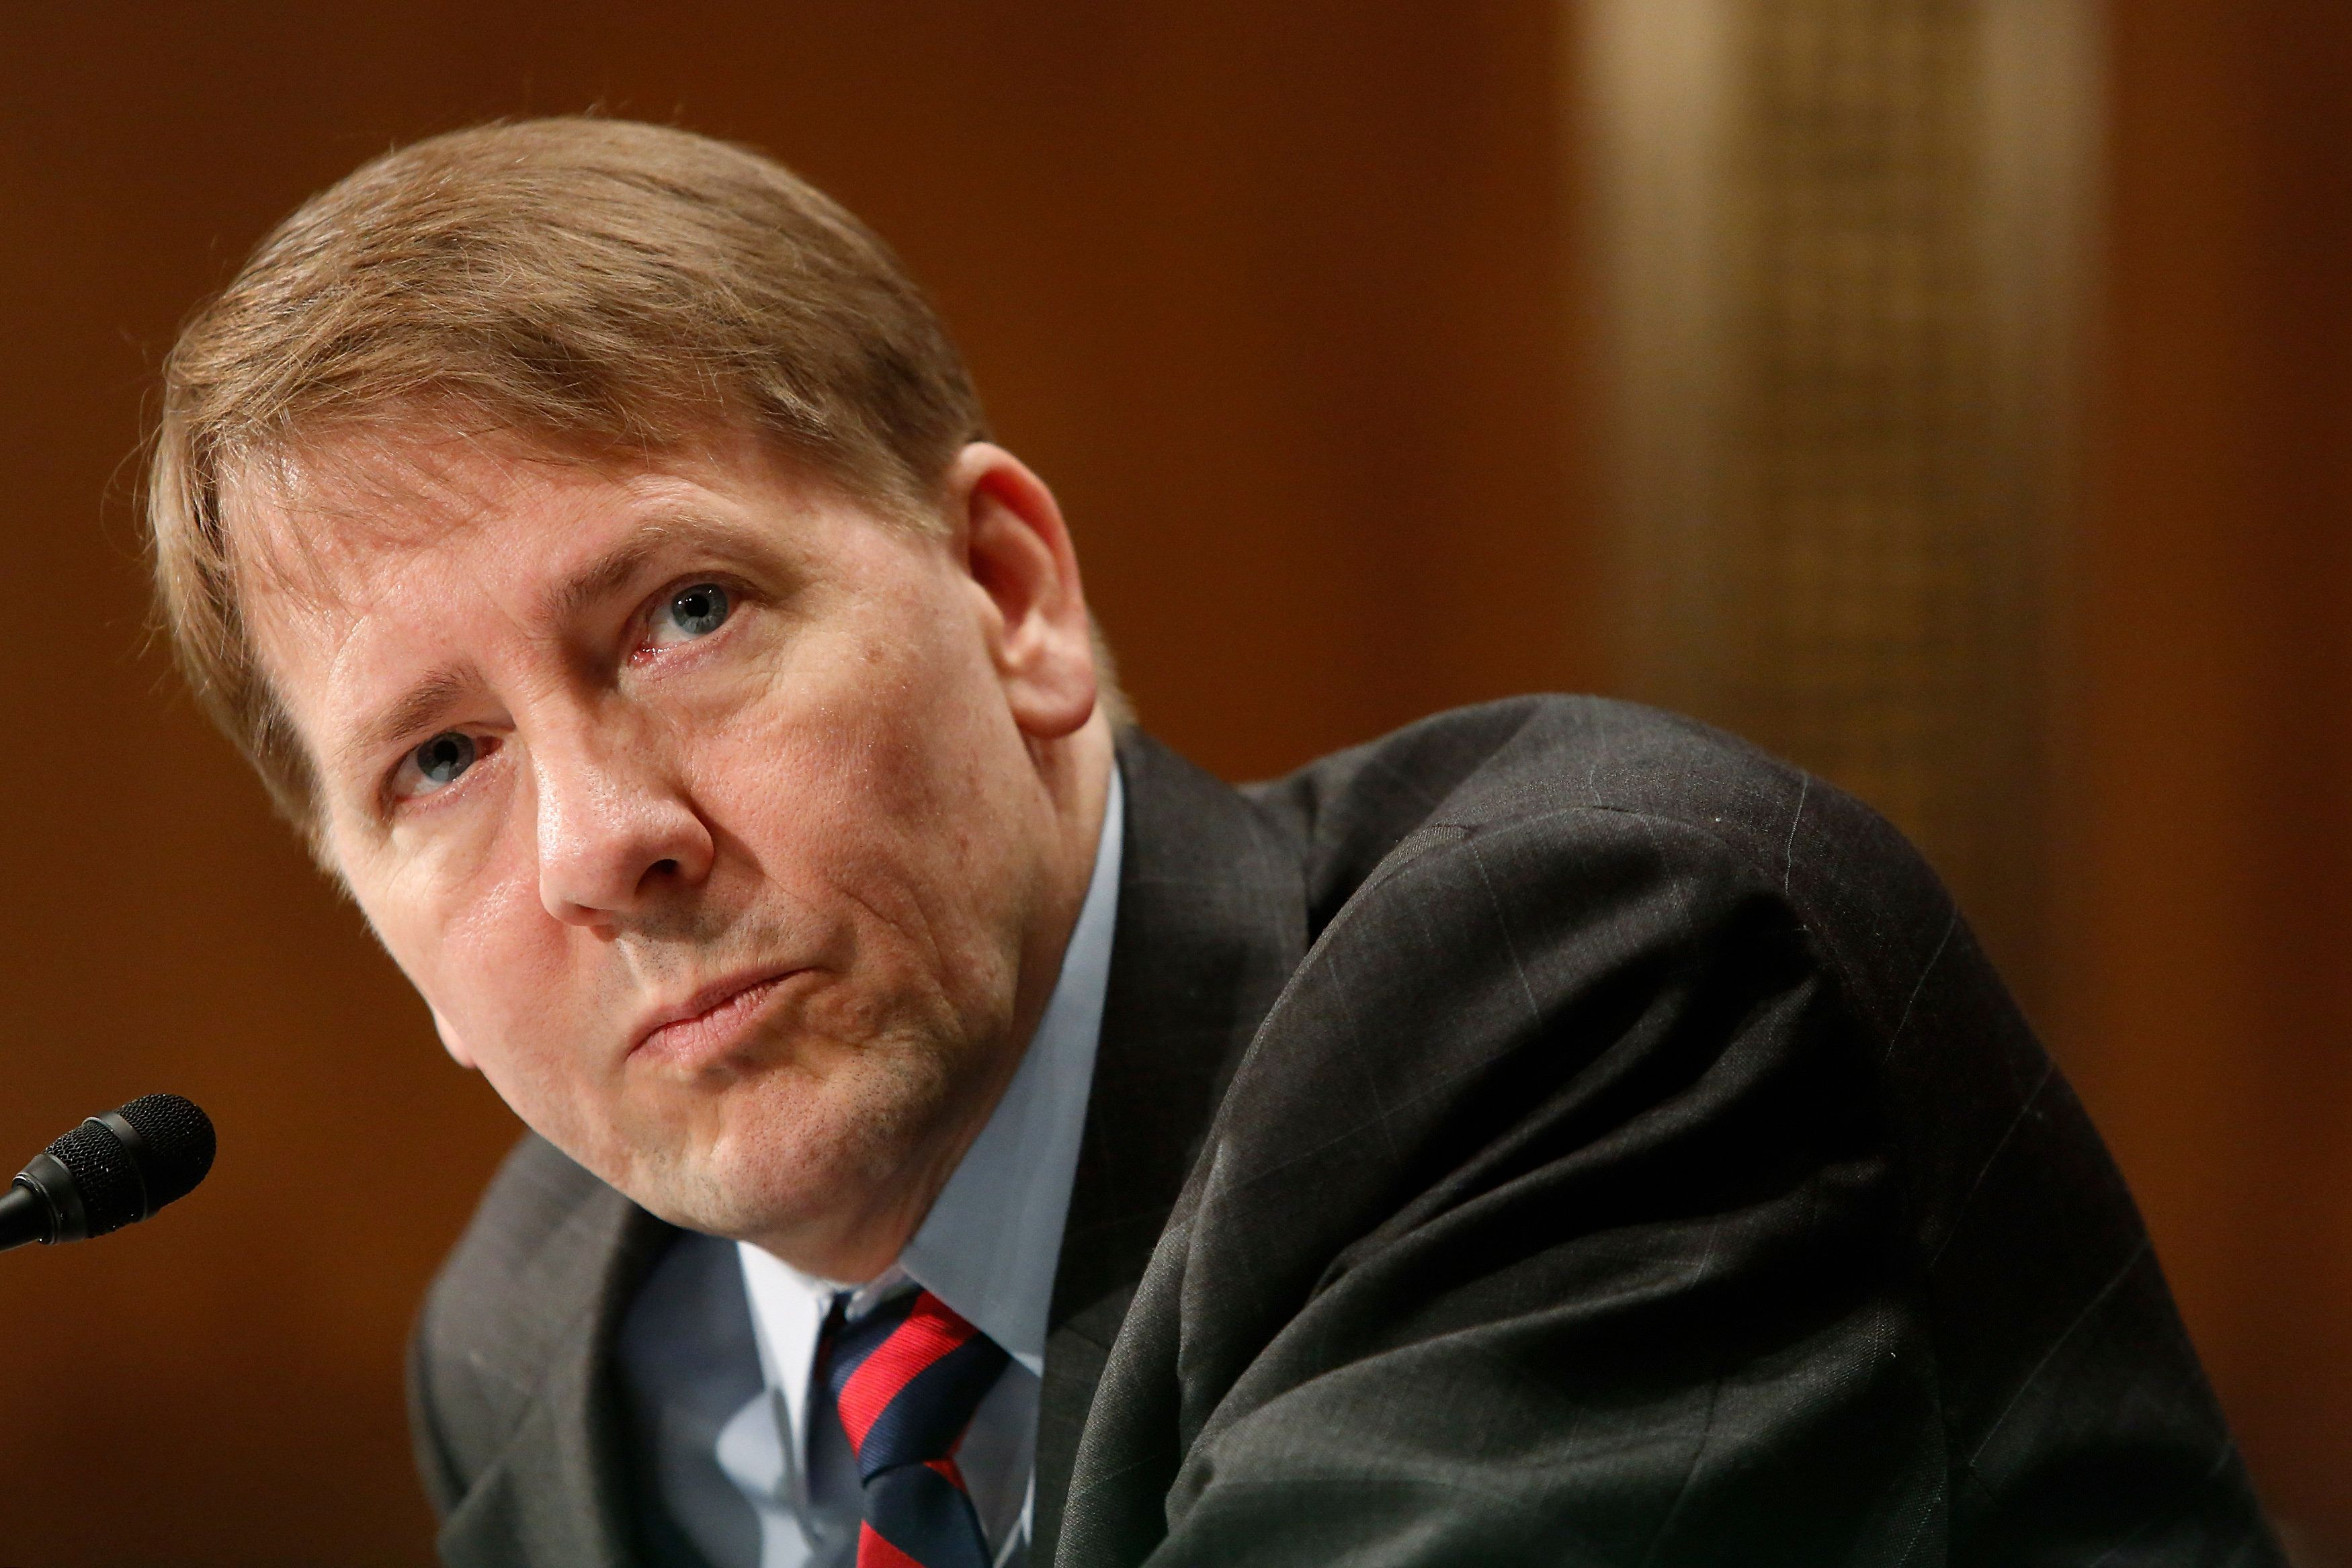 U.S. Consumer Financial Protection Bureau (CFPB) Director Richard Cordray testifies before a Senate Banking Committee hearing on Capitol Hill in Washington June 10, 2014. REUTERS/Jonathan Ernst    (UNITED STATES - Tags: POLITICS BUSINESS)